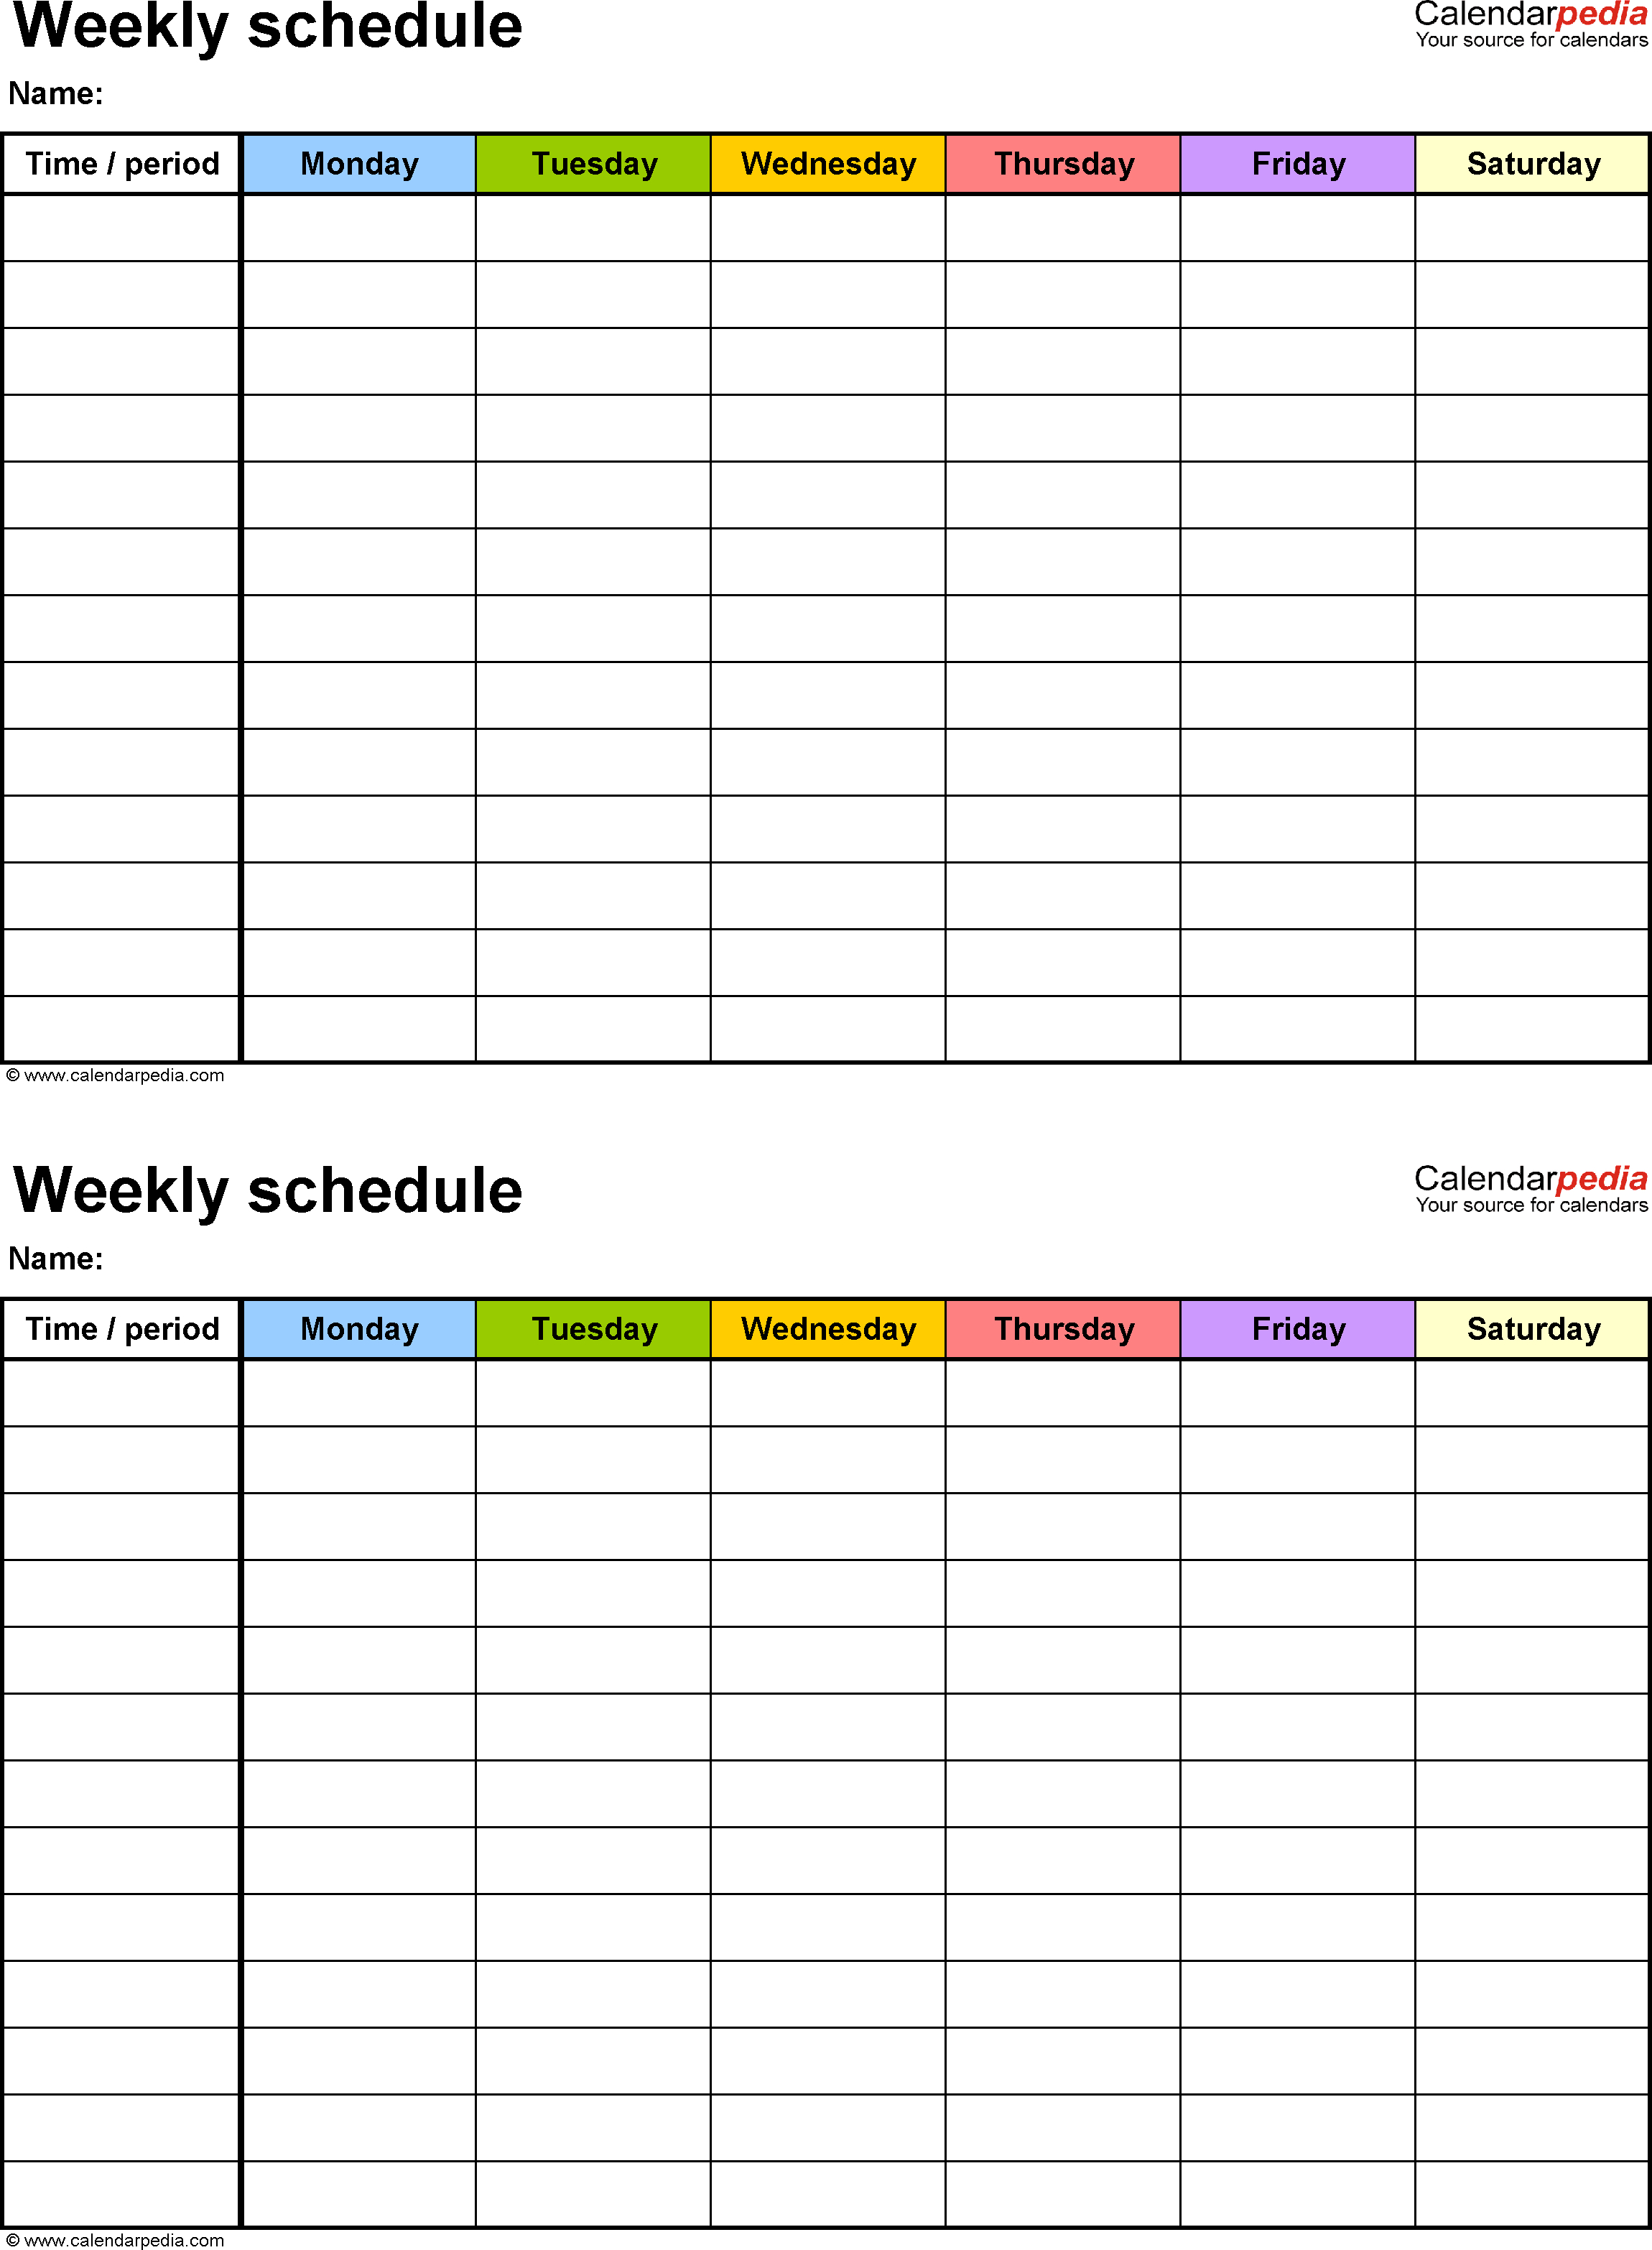 Free Weekly Schedule Templates For Word - 18 Templates with Blank Two Week Calendar Template